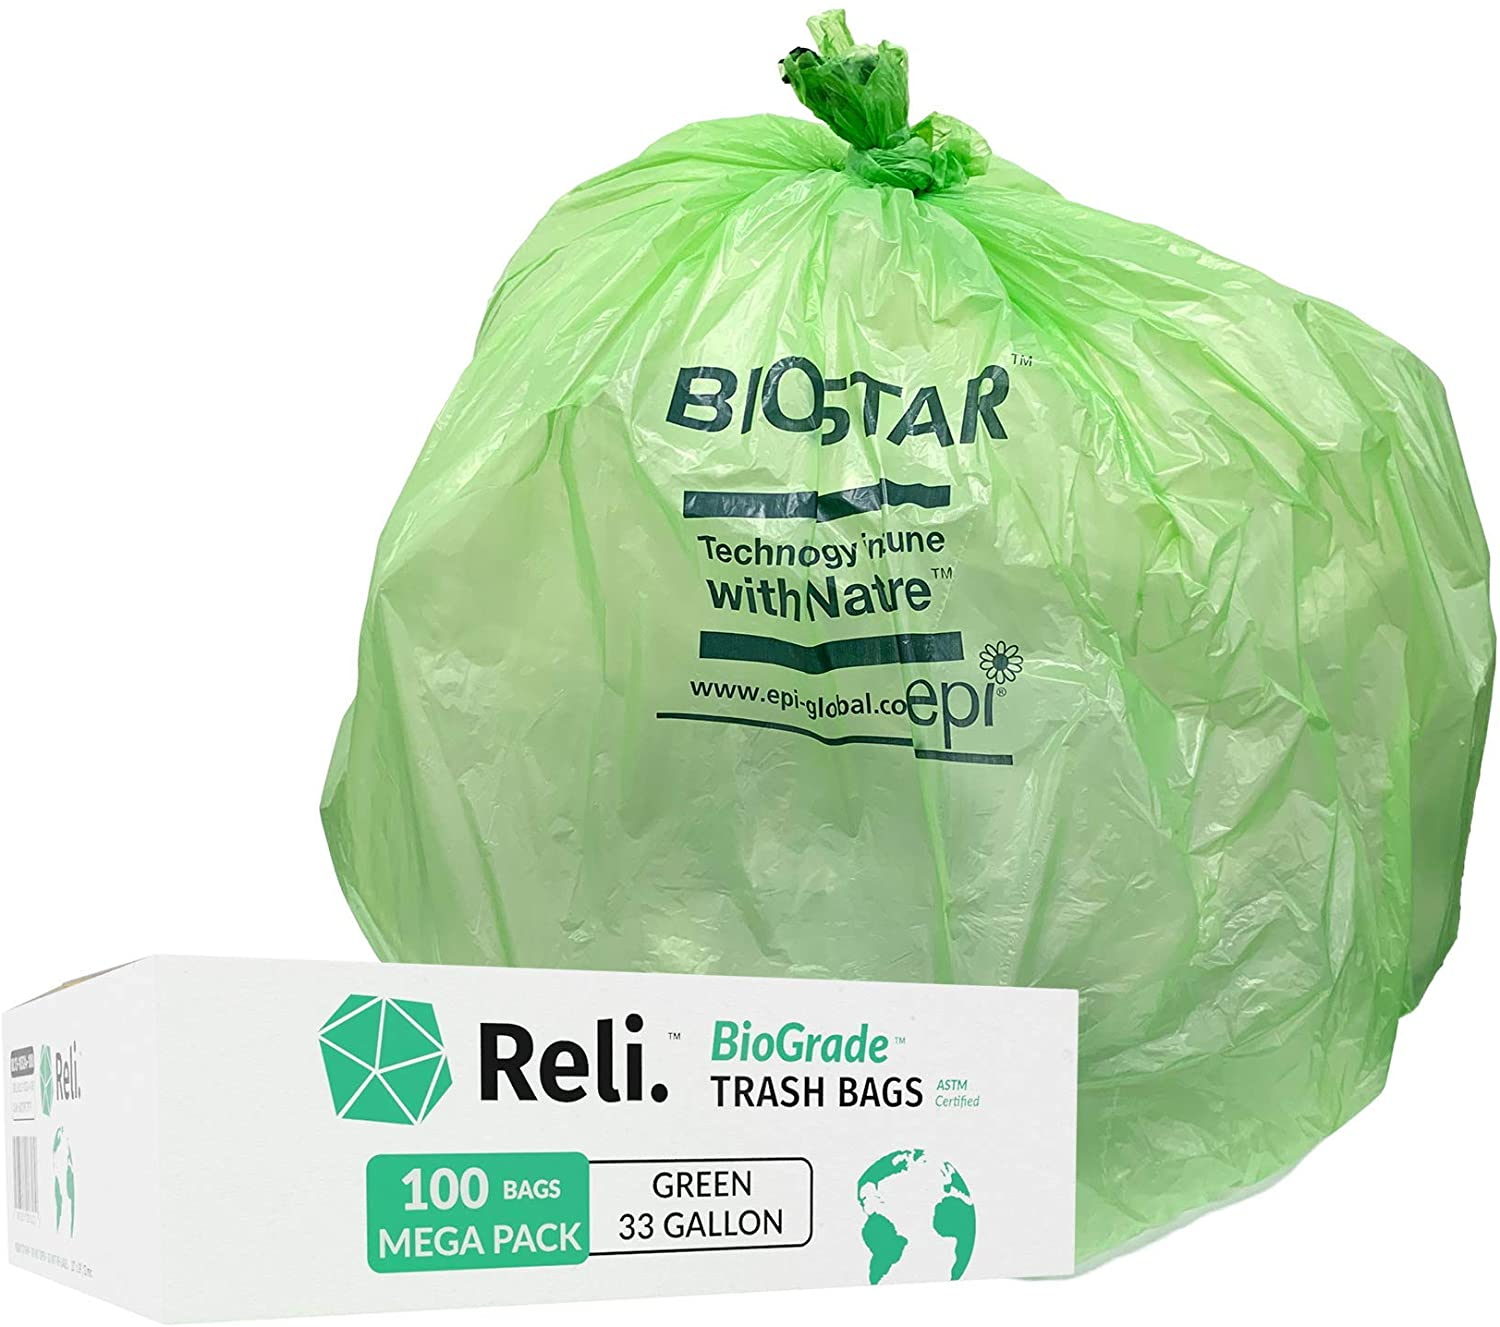 Reli Biodegradable 33 Gallon Trash Bags 100 Count Bulk Green Eco Friendly Garbage Bags 30 Gallon 33 Gallon 35 Gal Capacity Oxo Biodegradable Under Certain Conditions See Product Description Home Improvement Amazon Com